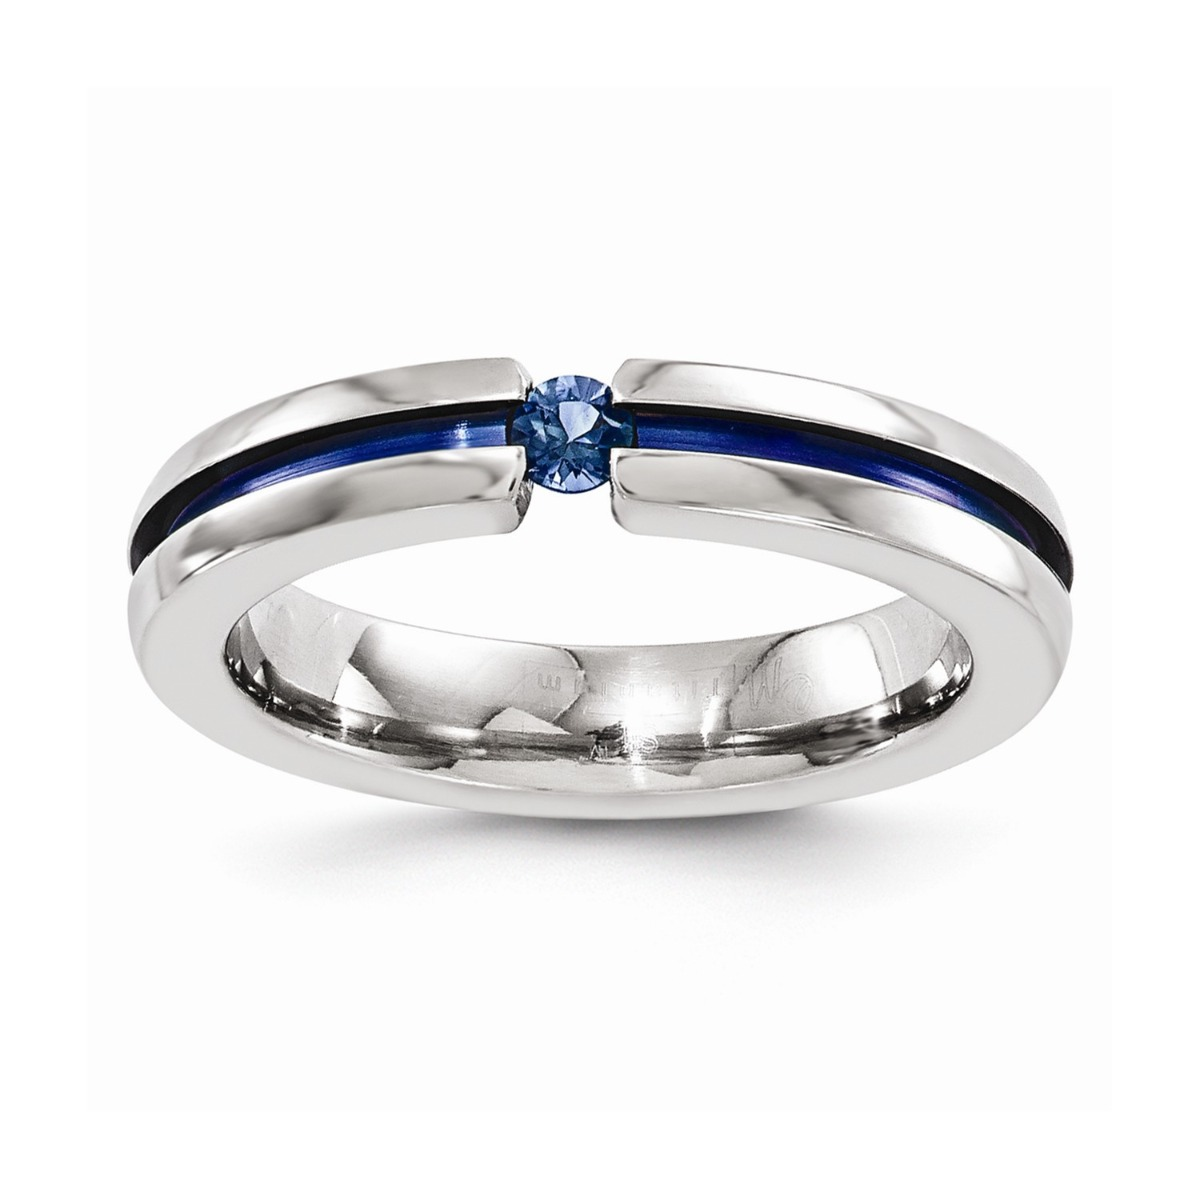 Edward Mirell Titanium Sapphire & Blue Anodized Grooved 4mm Band